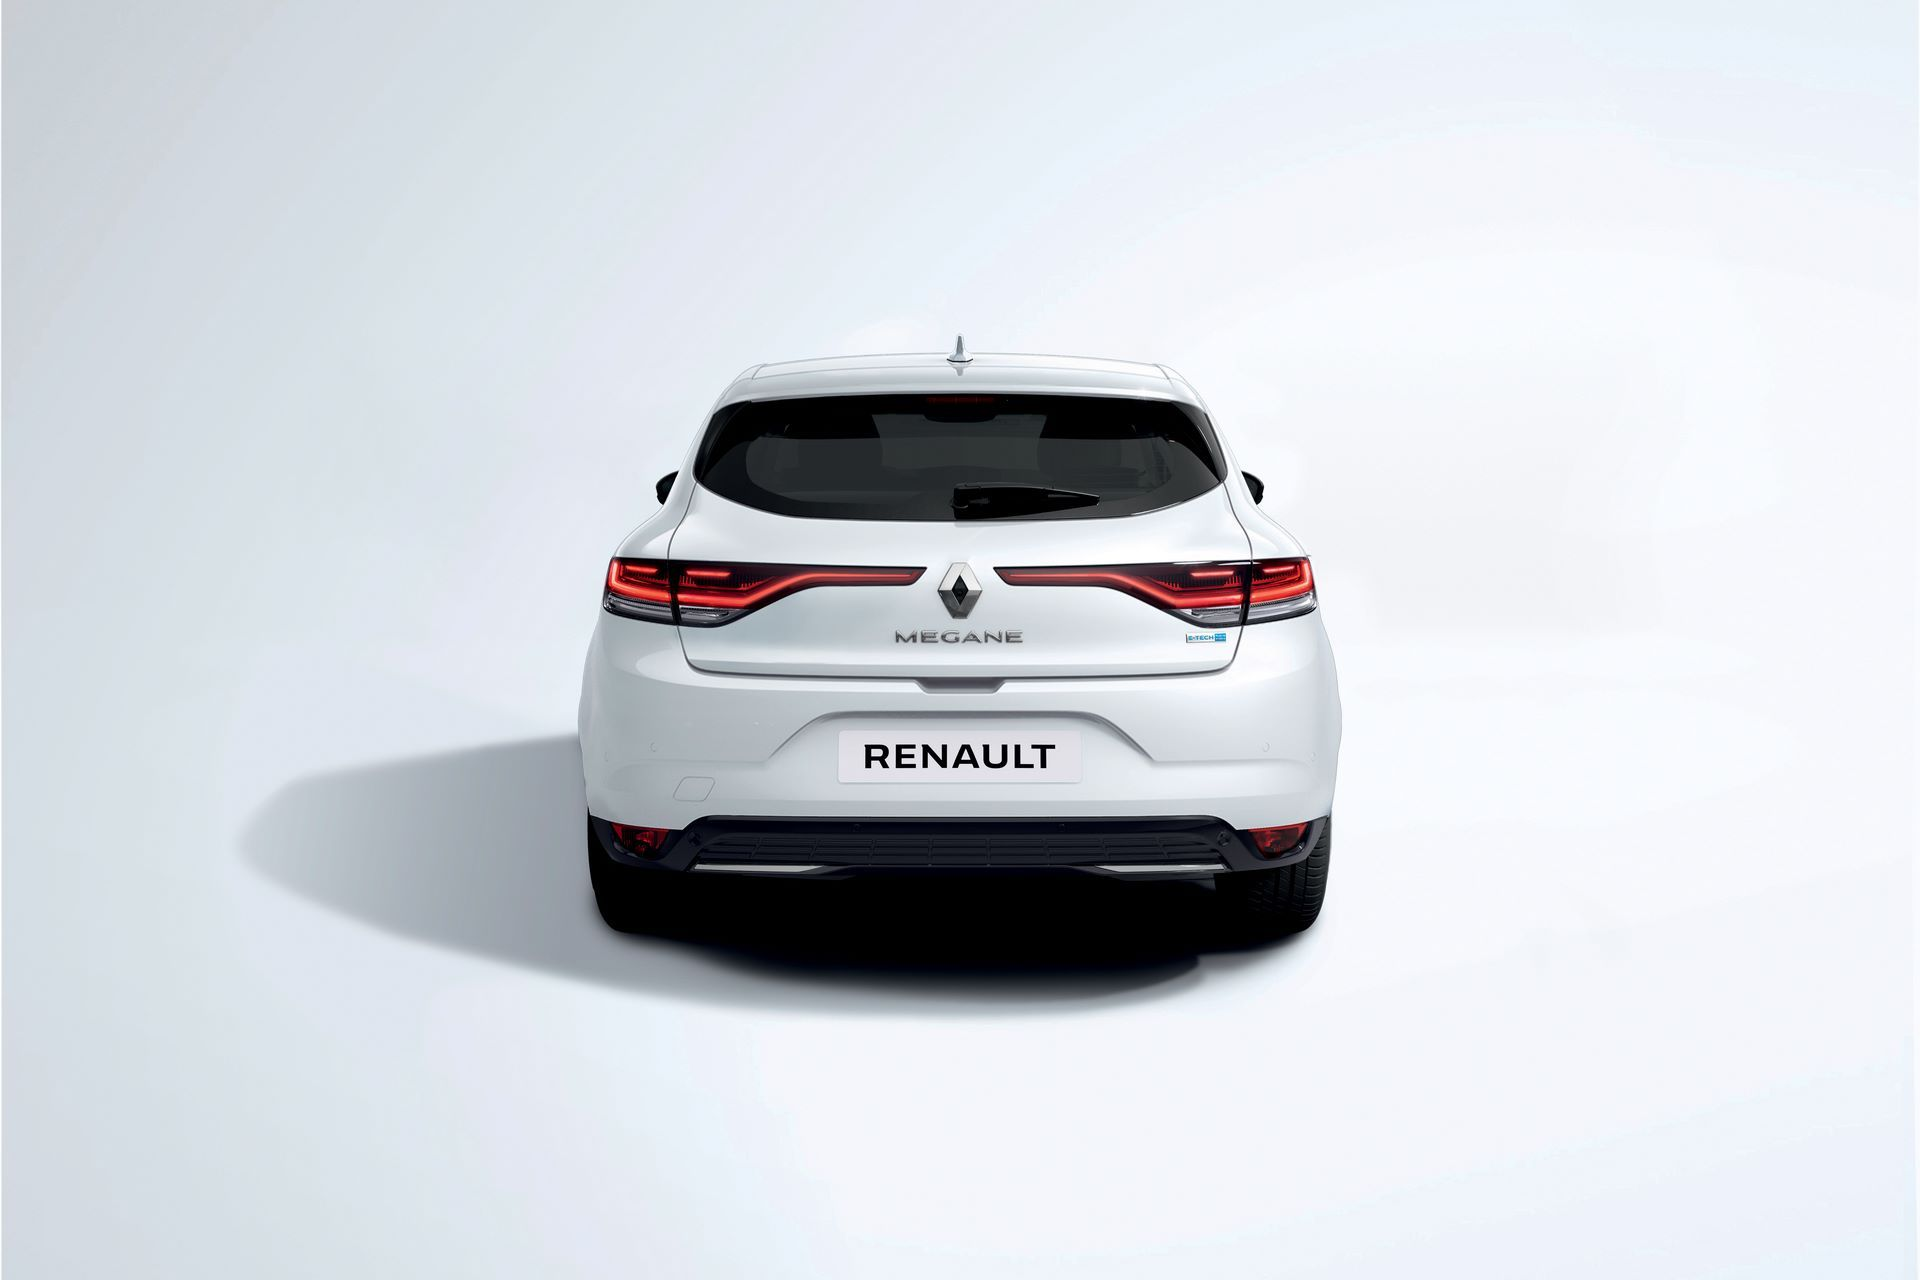 2020-New-Renault-MEGANE-Berline-E-TECH-Plug-In-Hybrid-3